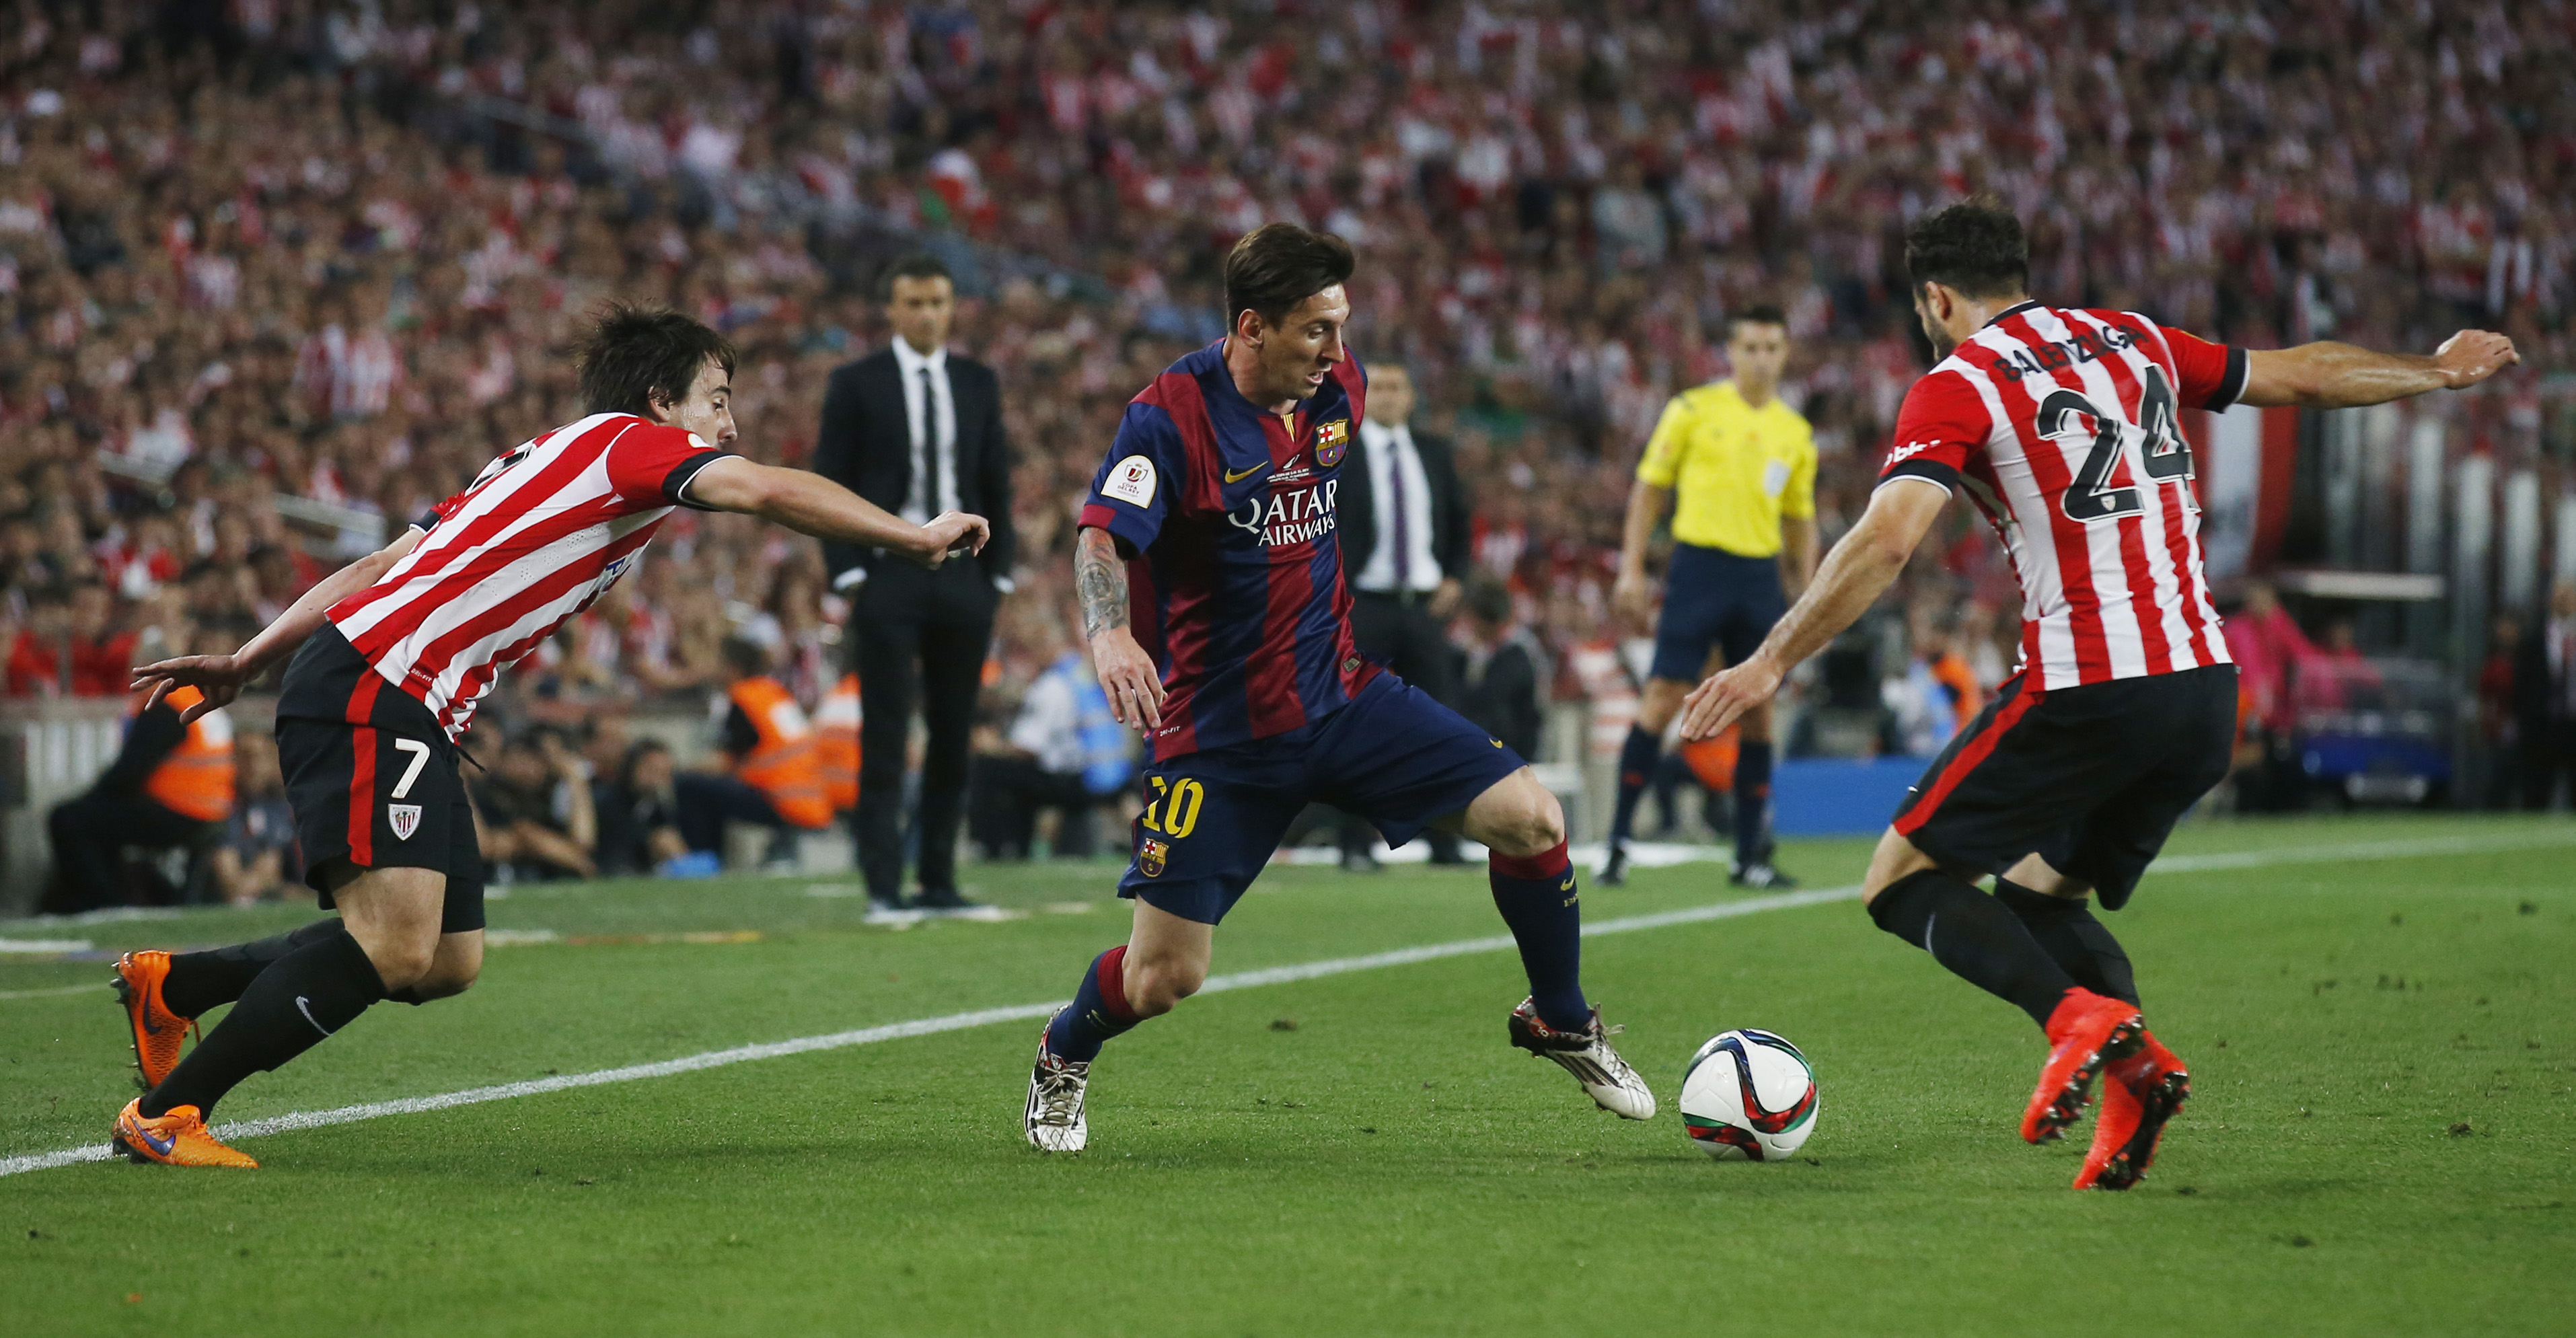 Lionel Messi goes past Benat and Mikel Balenziaga on his way to score the first goal for Barcelona.